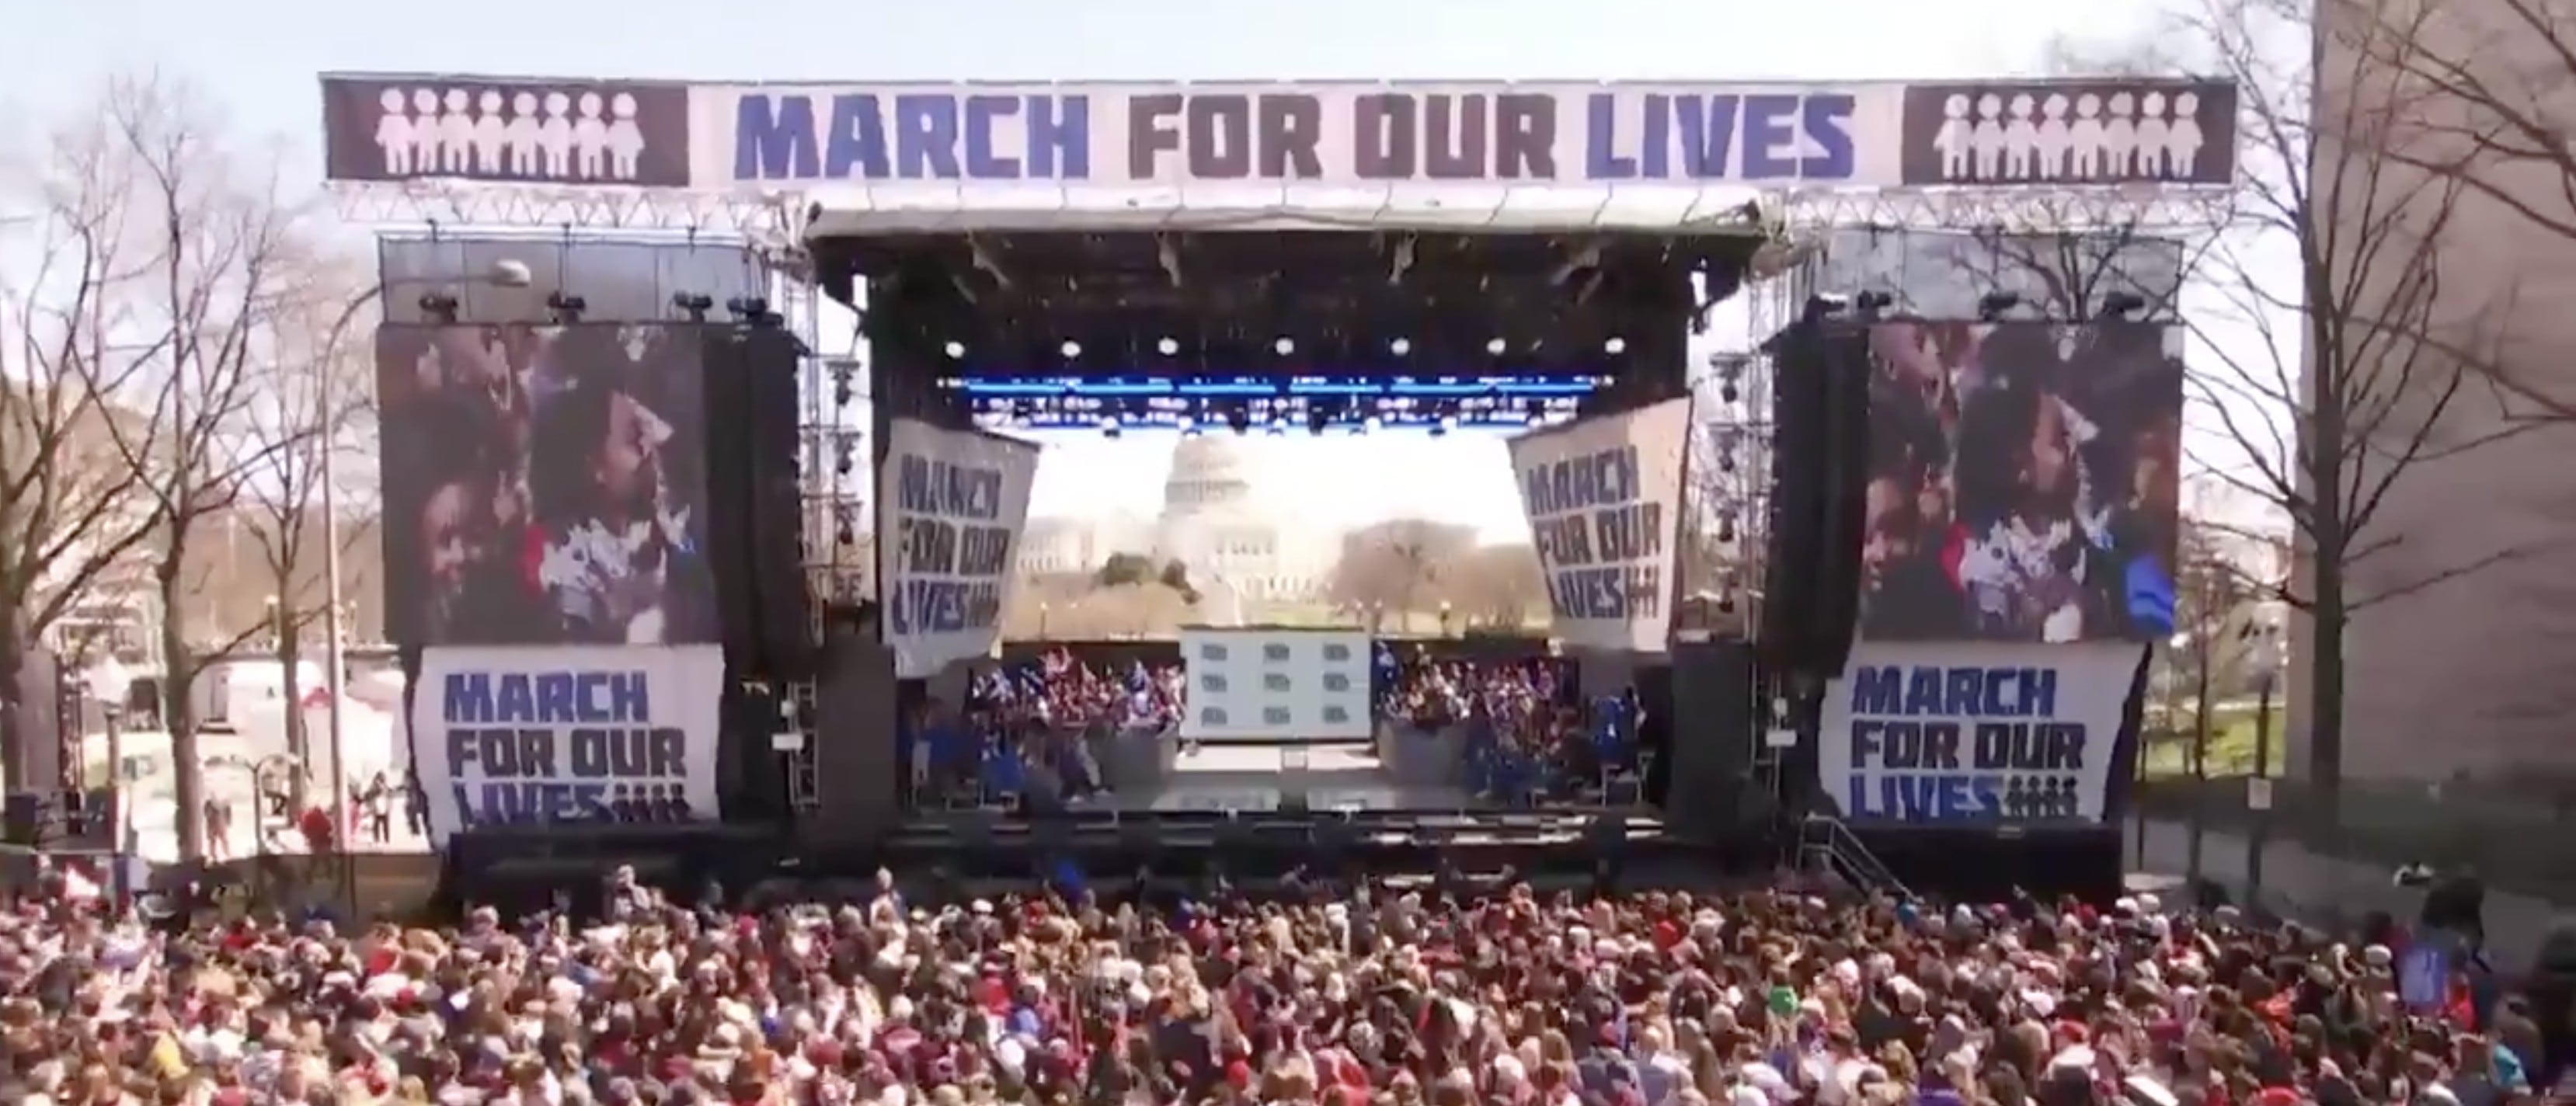 Marching for Lives Everywhere